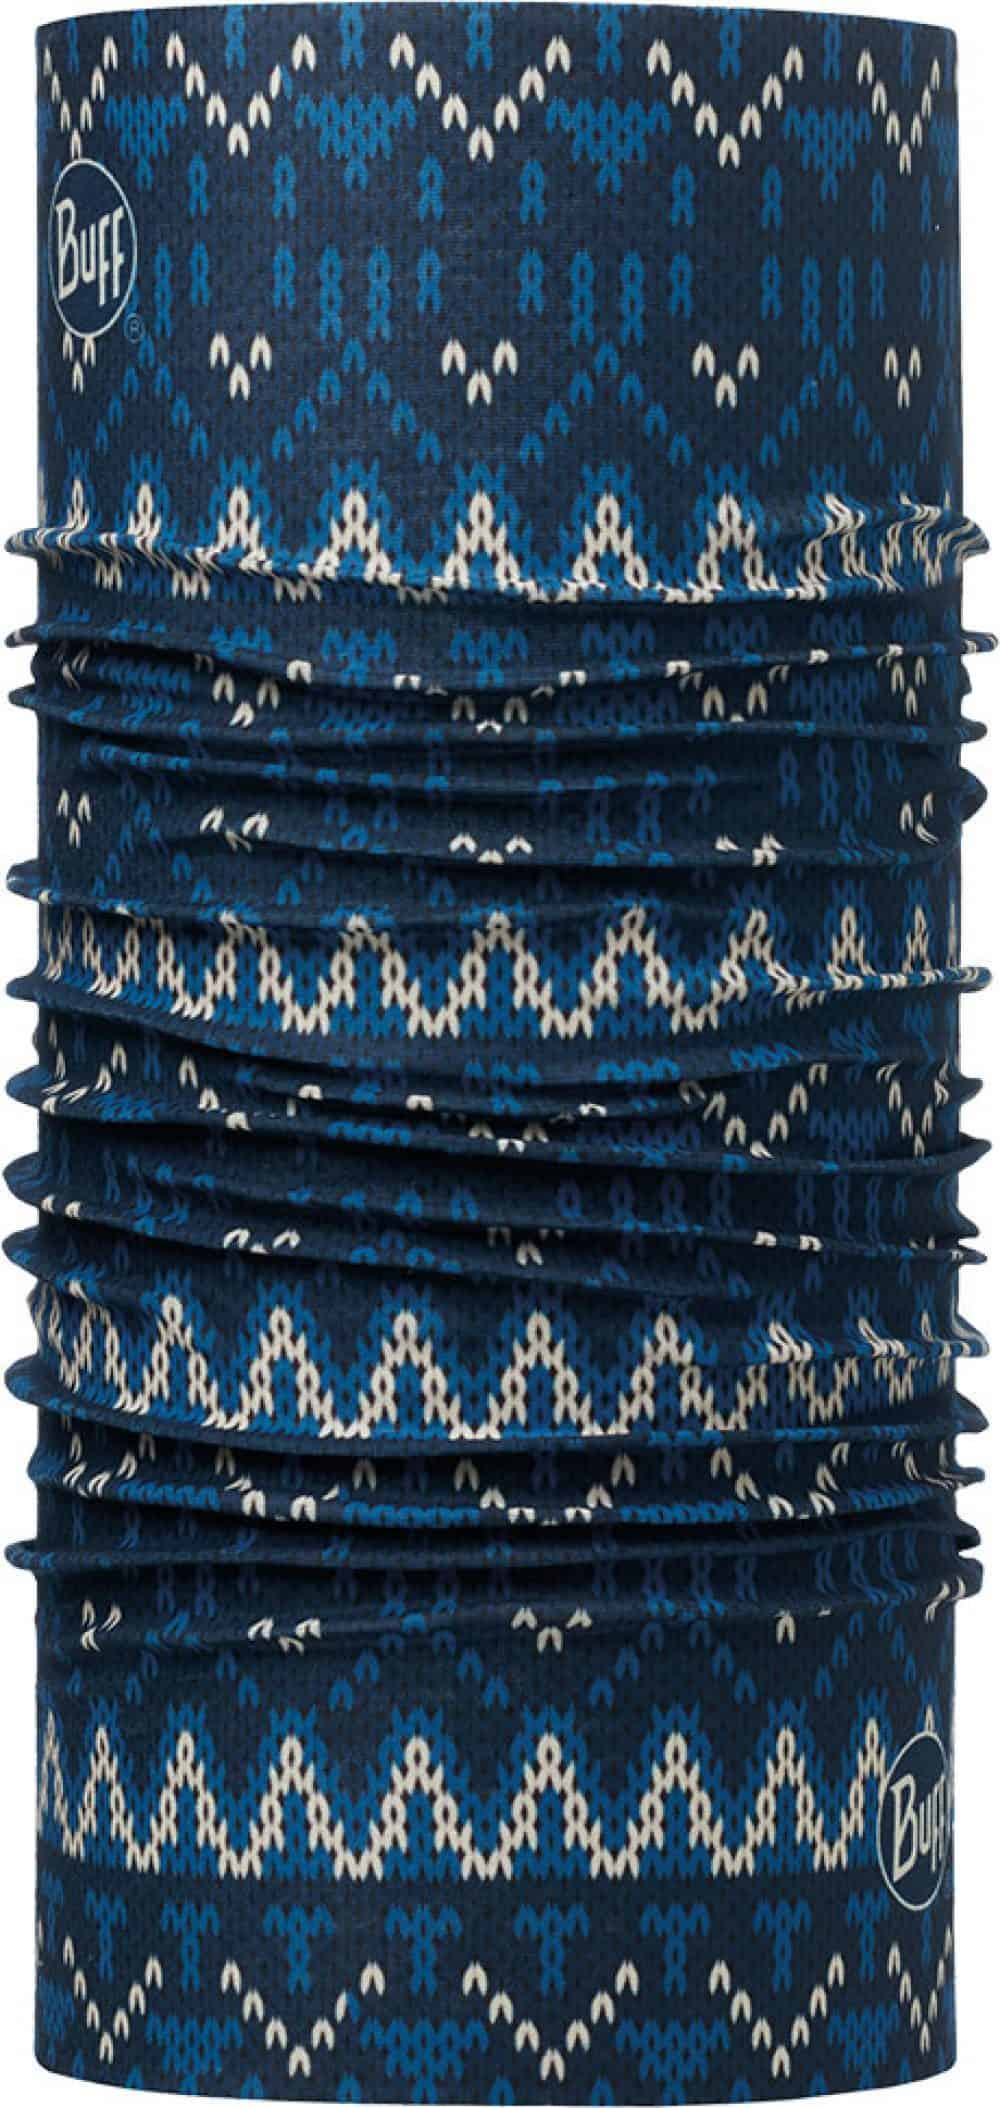 "Image of Original Buff® design ""Knit Dark Navy"""